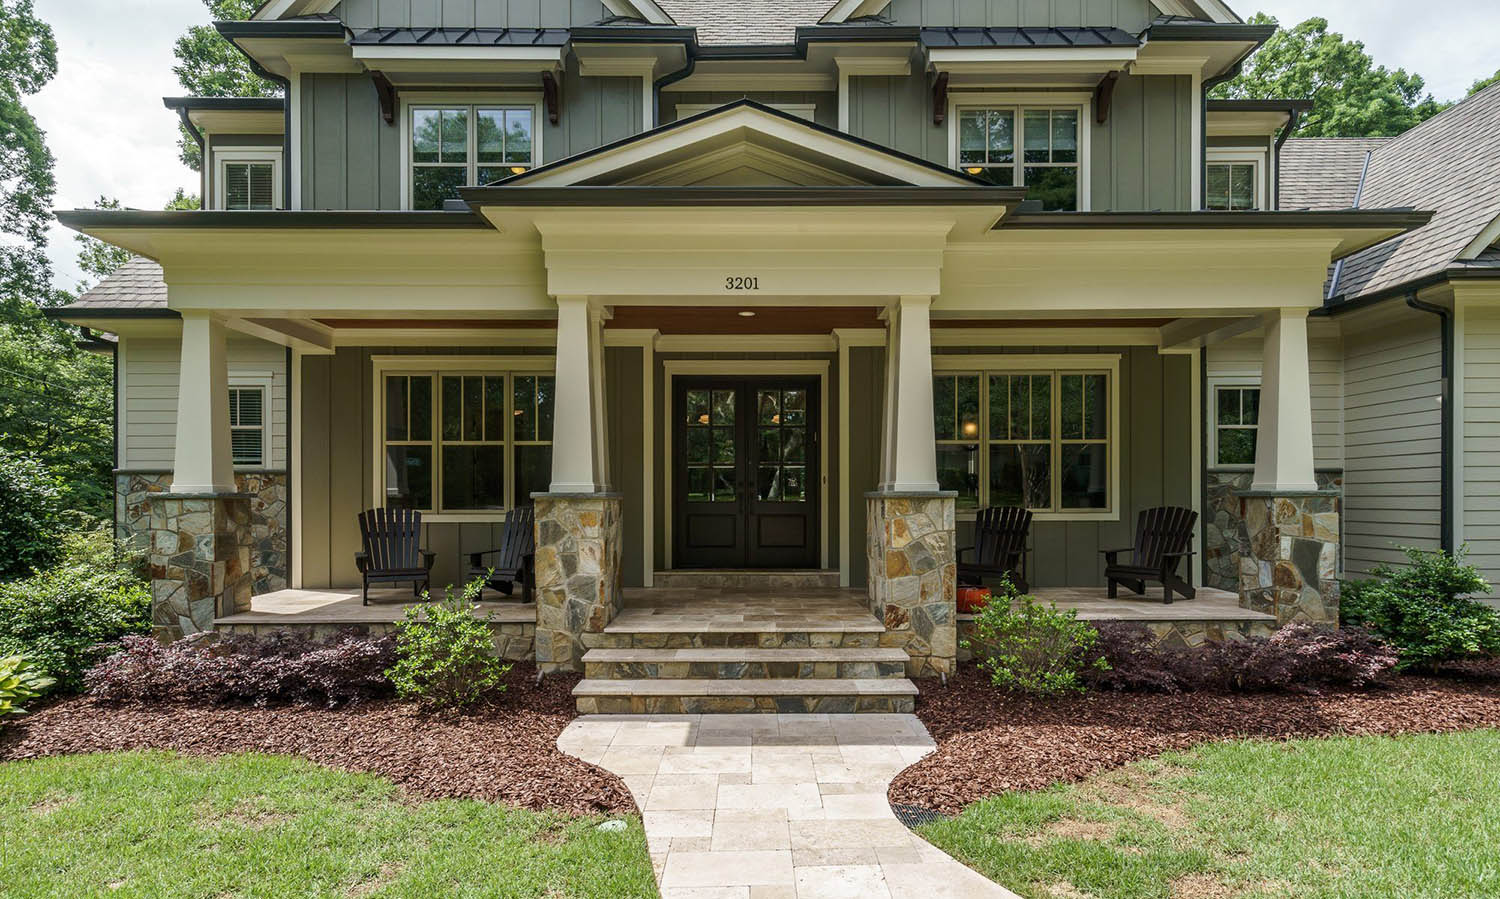 muted gray green vertical siding with white trim and black metal roofing stone veneer wood porch soffit